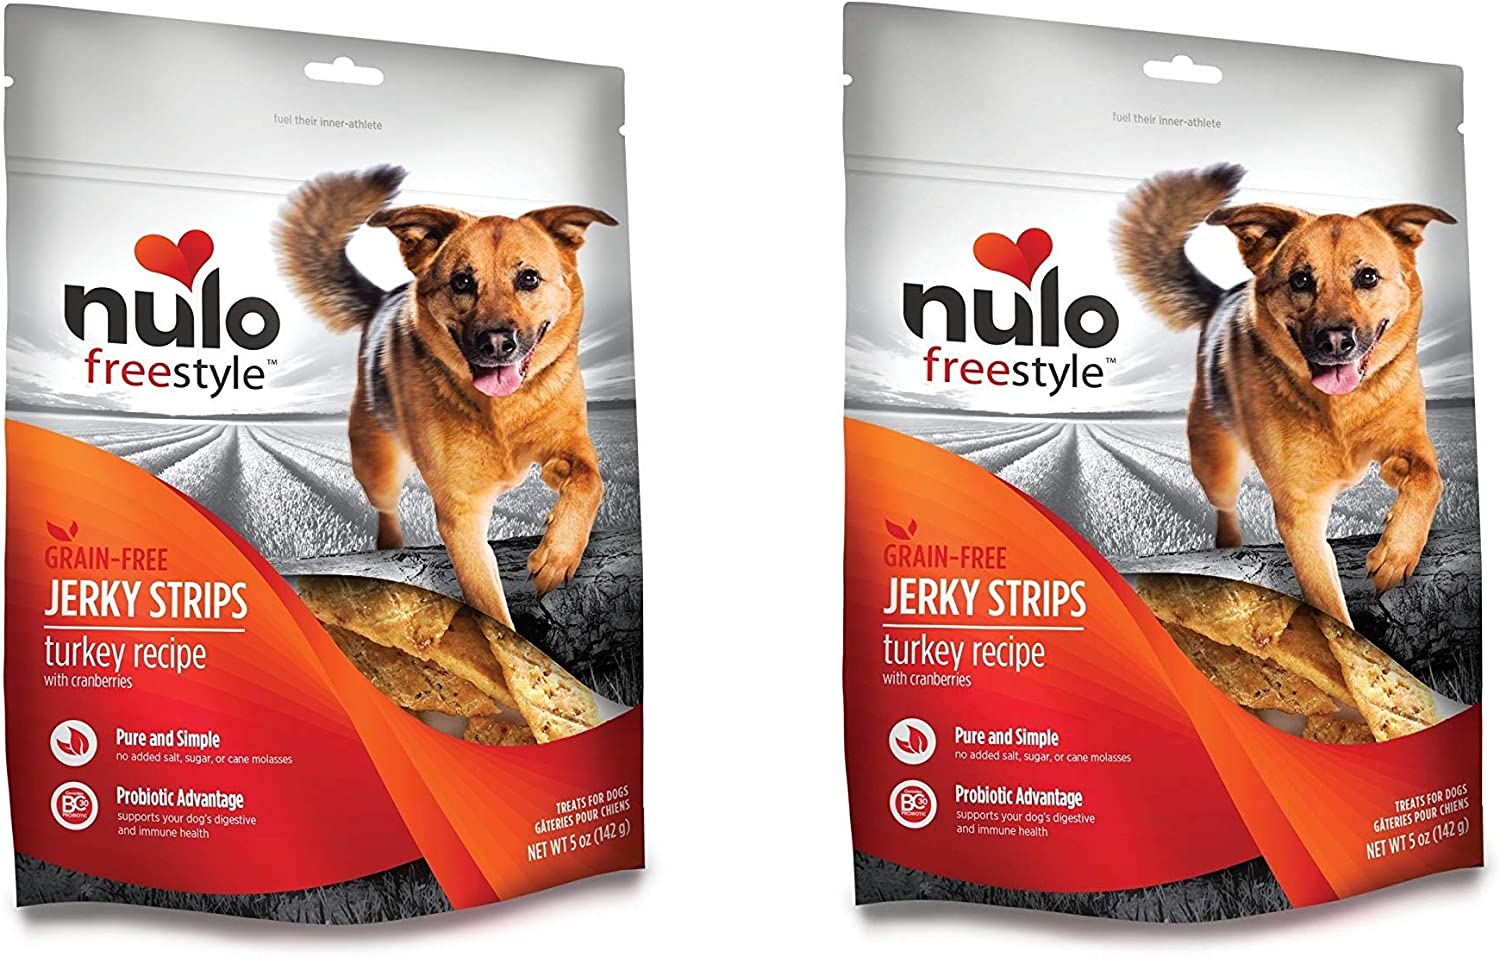 Nulo Freestyle 2 Pack of Grain-Free Jerky Strips Dog Treats, 5 Ounces Each, Turkey Recipe with Cranberry